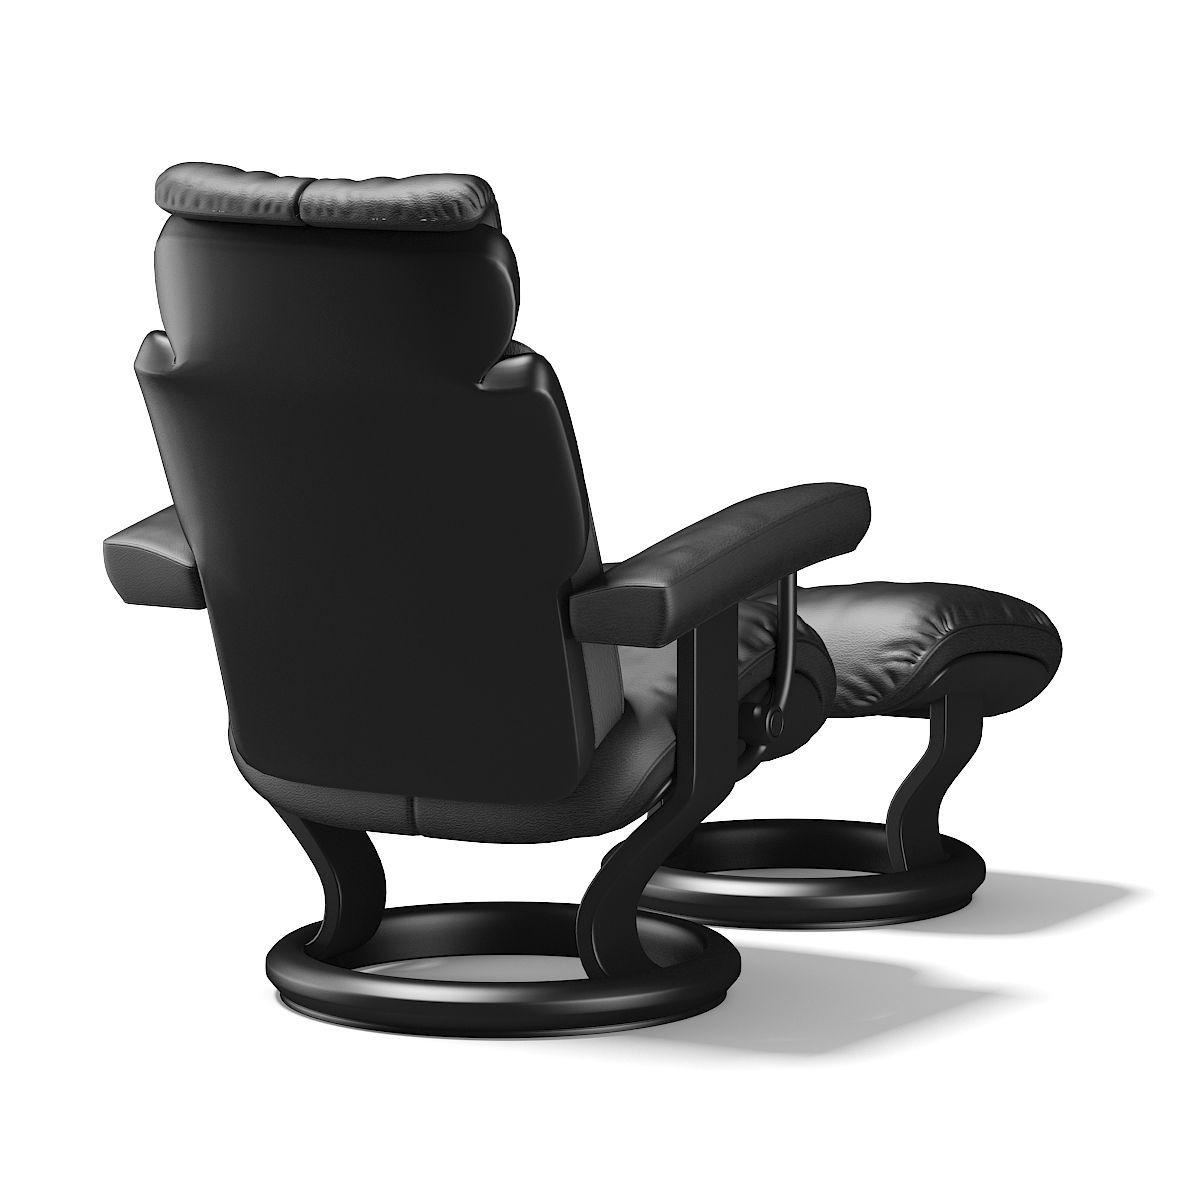 Black Leather Chair With Footrest Black Leather Chair Leather Chair Black Leather Armchair